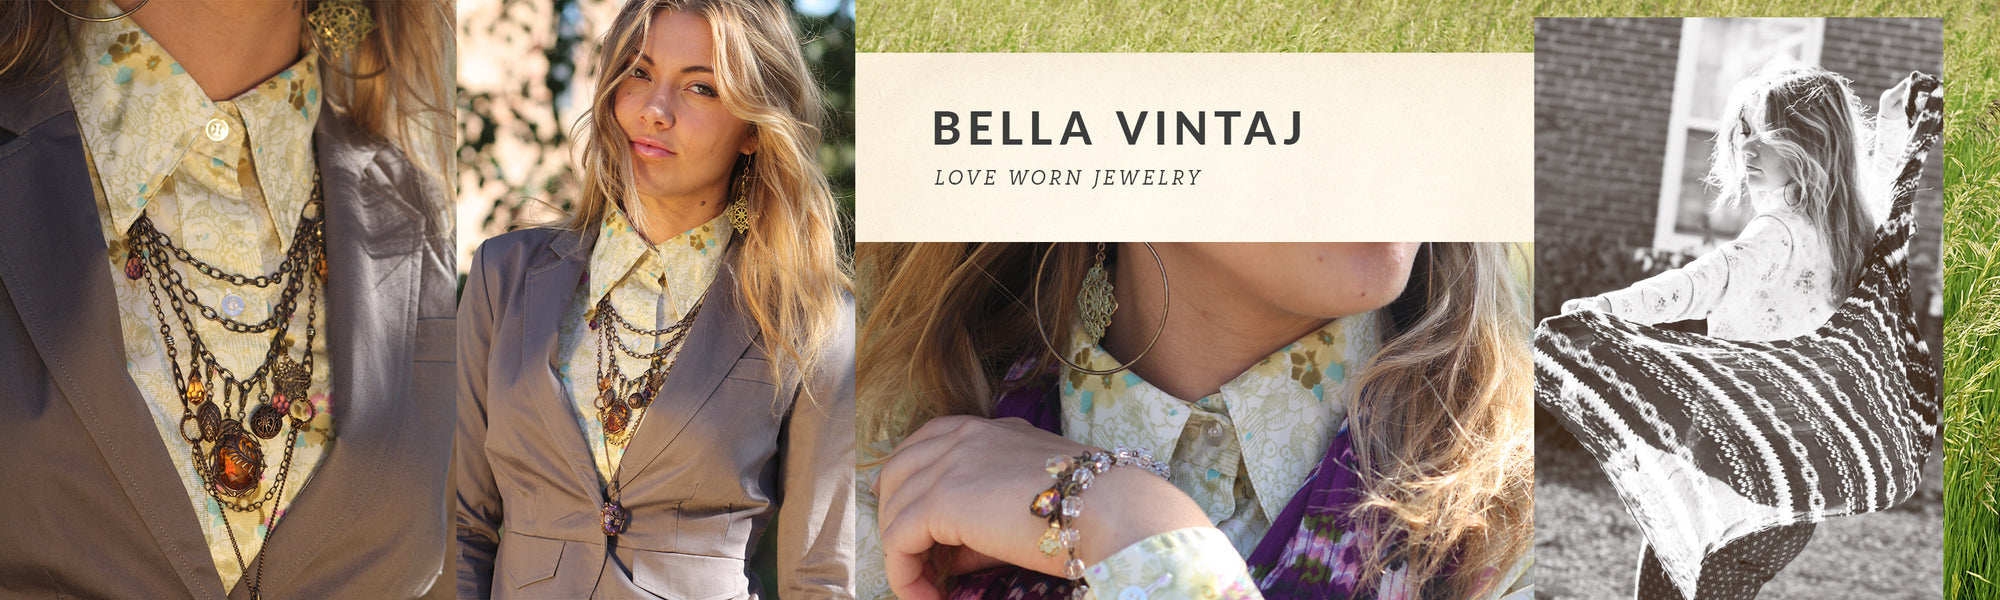 Bella Vintaj Jewelry